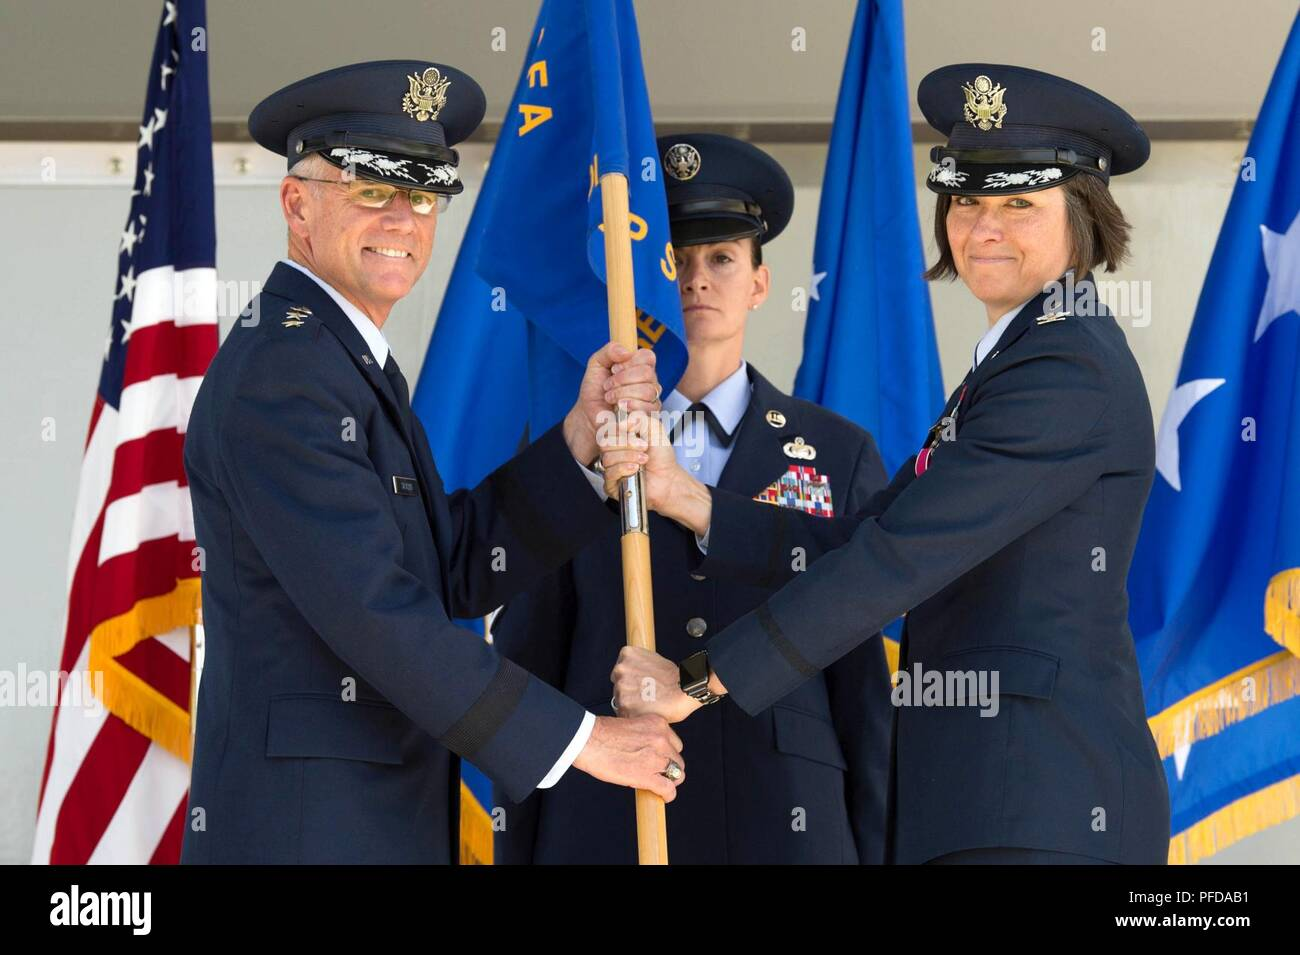 fad86d821e2 U.S. Air Force Academy – Col. Jacqueline Breeden, outgoing United States  Air Force Academy Preparatory School commander, relinquishes command of the  United ...